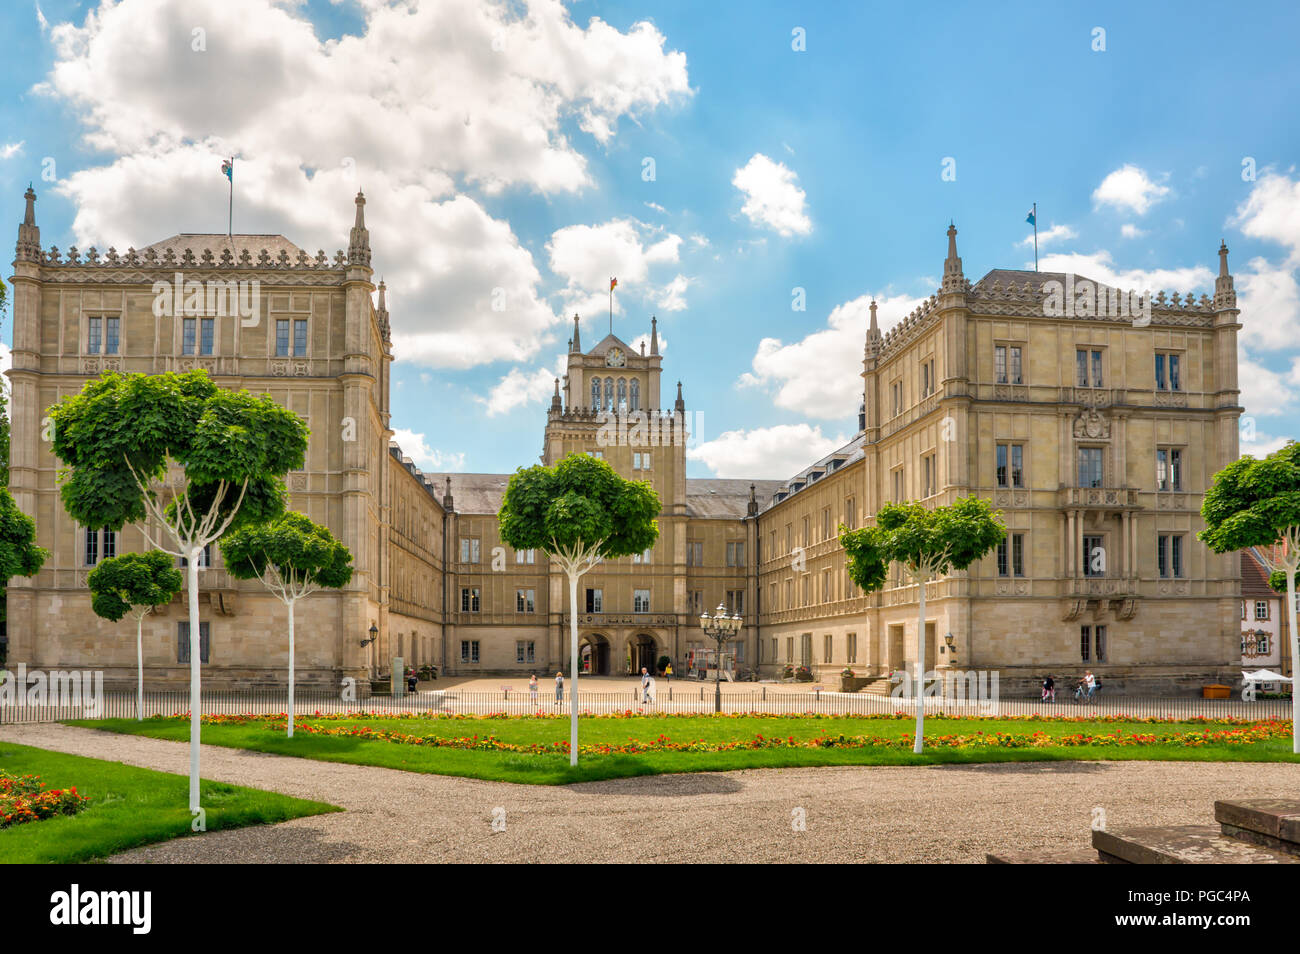 COBURG, GERMANY - JUNE 20: Ehrenburg palace in Coburg, Germany on June 20, 2018. - Stock Image